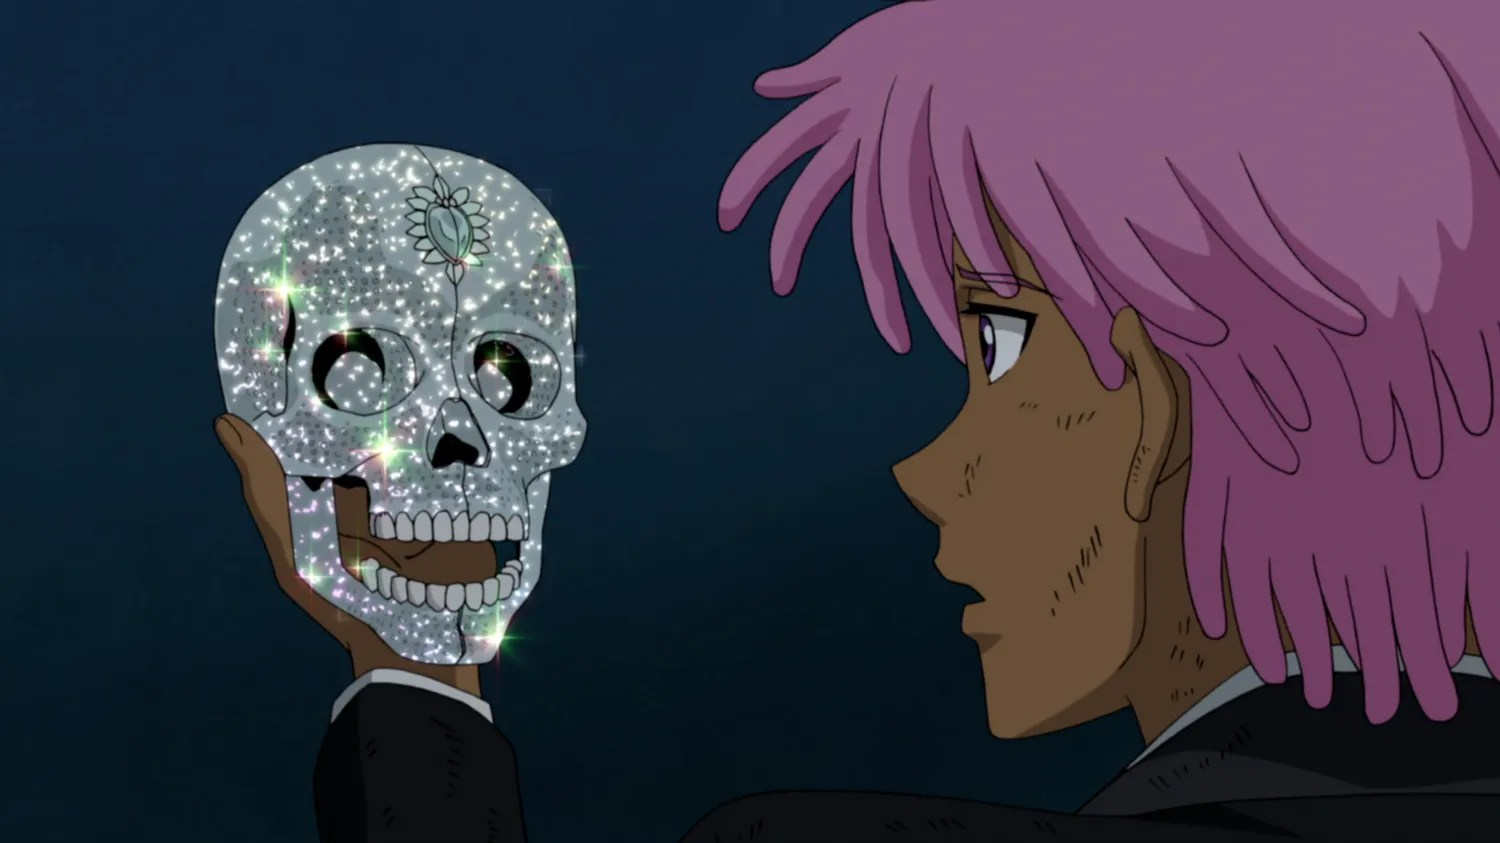 Wallpaper Saying Quotes A Neo Yokio Christmas Special Is Heading To Netflix Collider